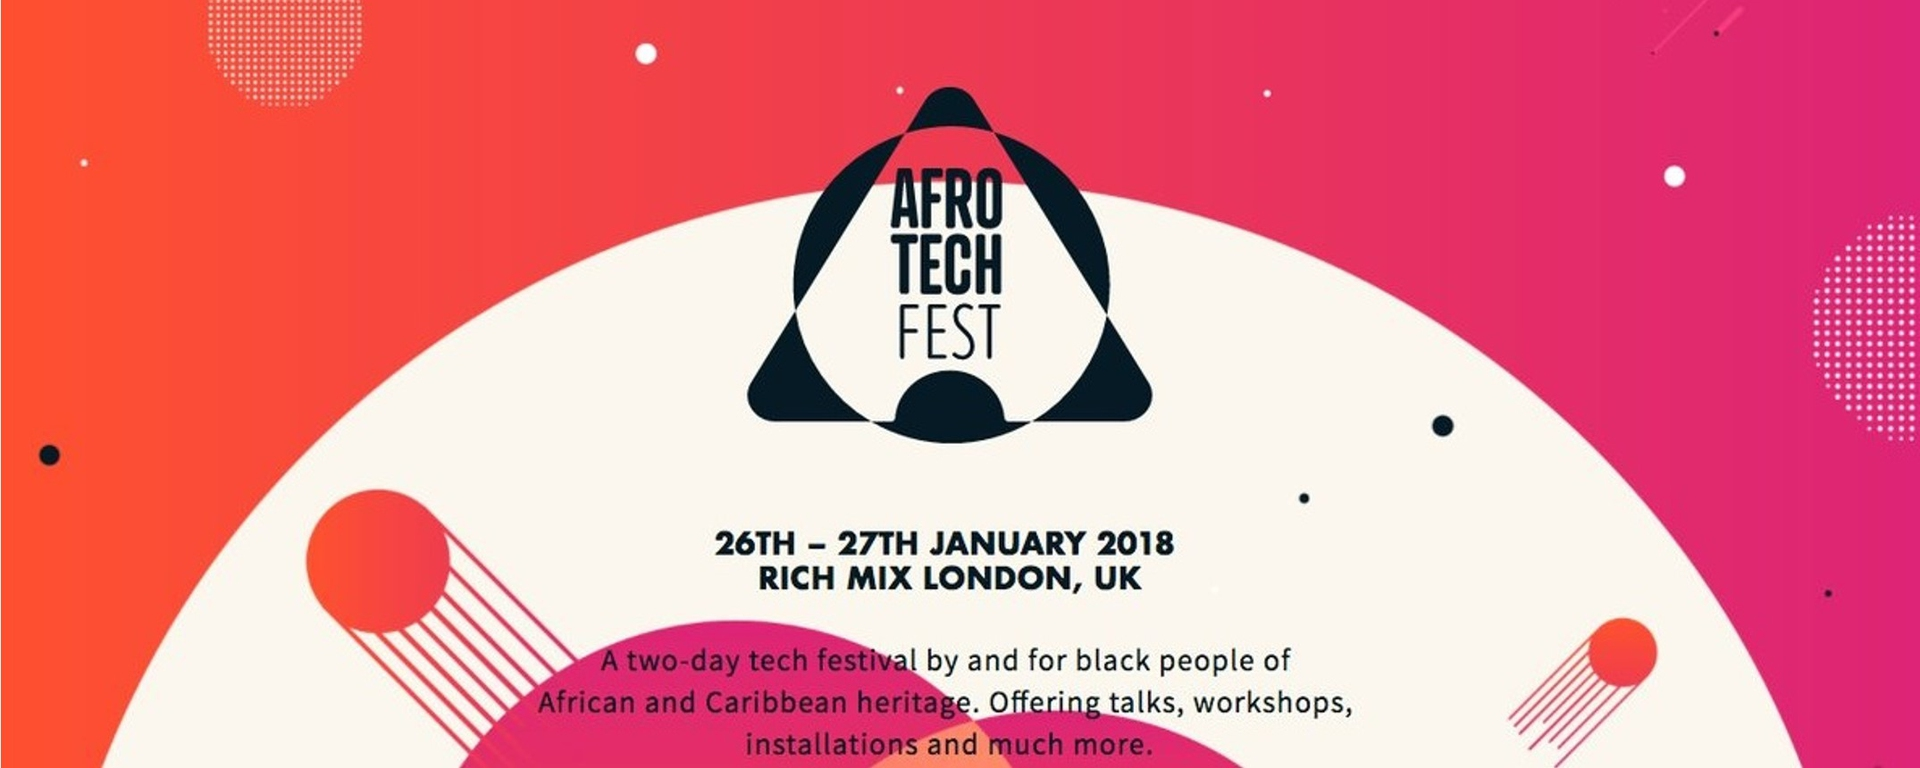 Afrotech Fest - Afrotech Fest Movemeback African event cover image